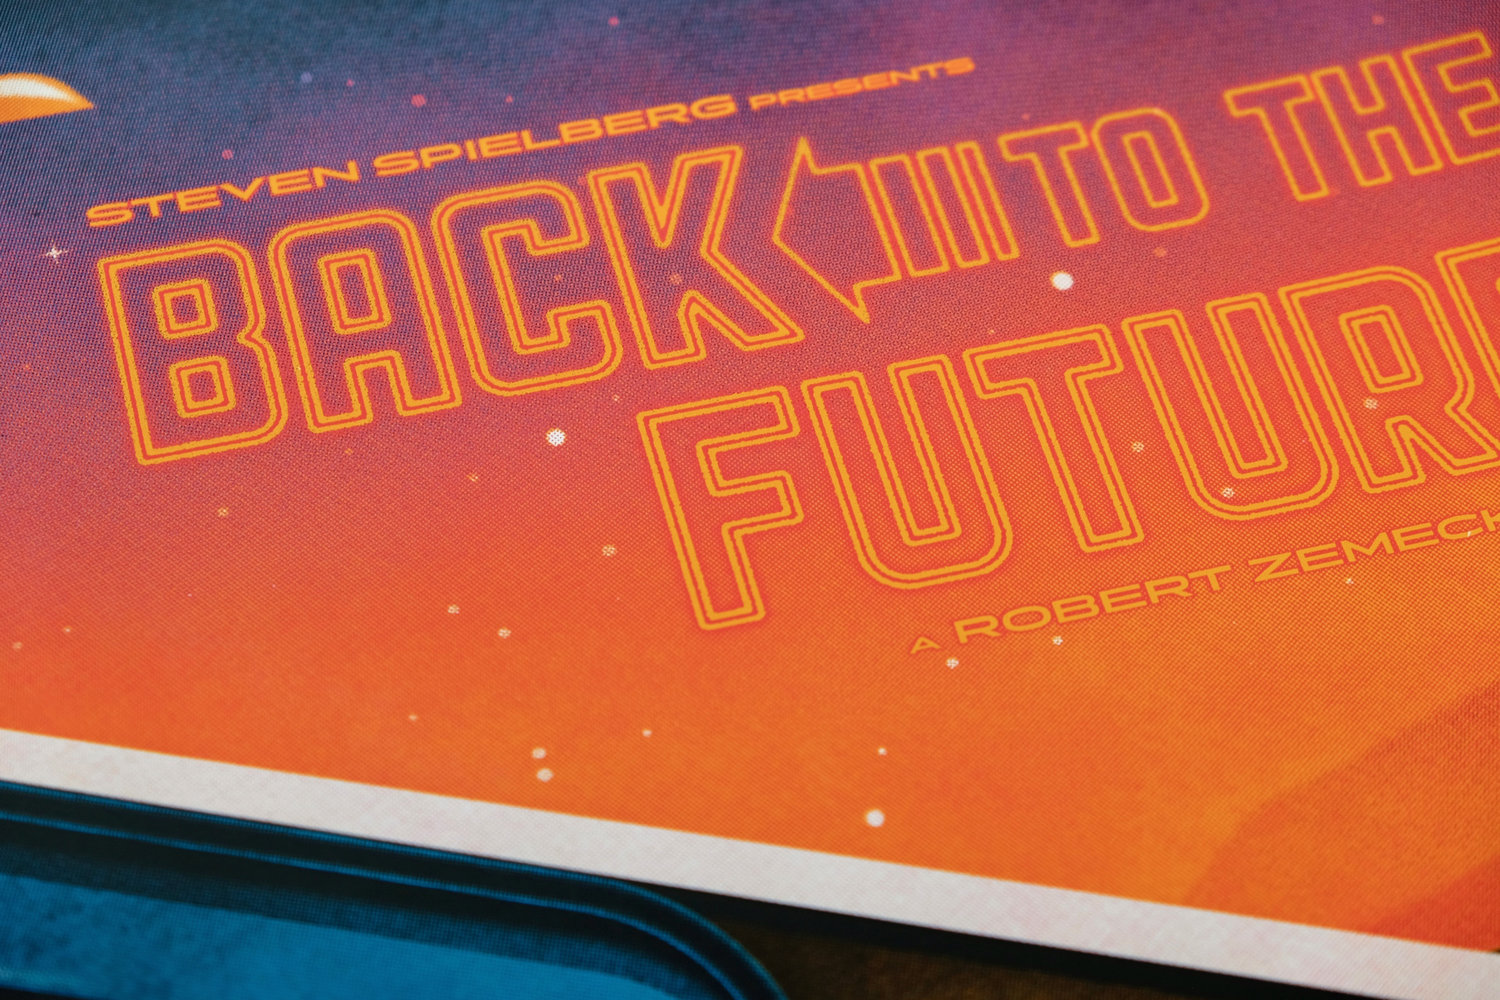 Back+to+the+Future+poster+by+DKNG_2.jpg